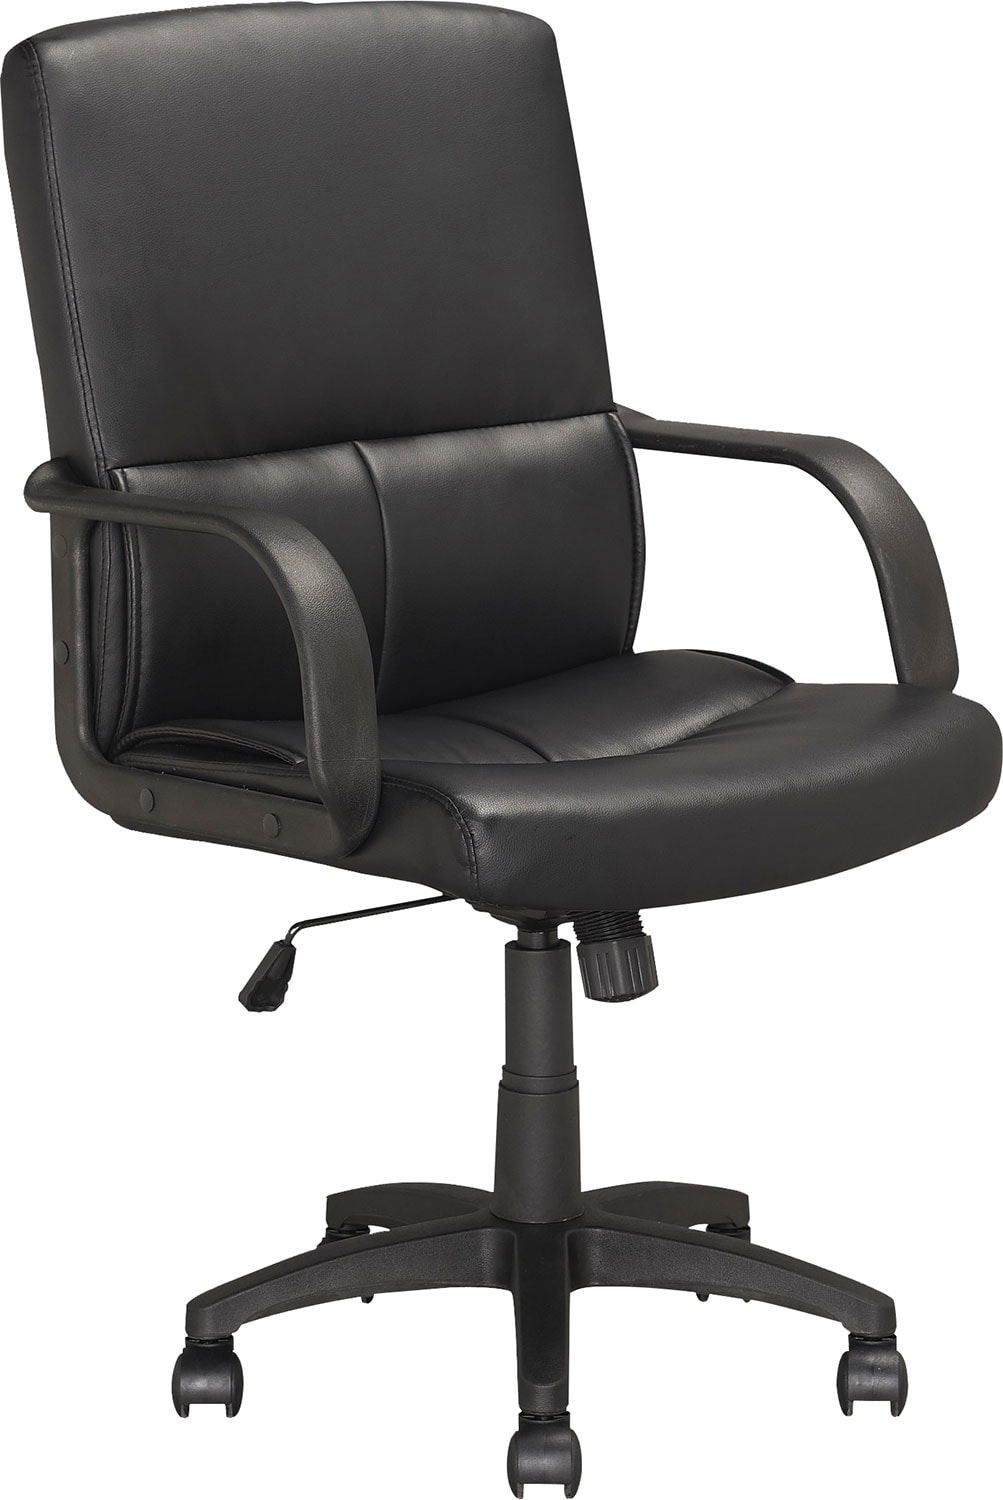 Home Office Furniture - Dunham Black Leatherette Managerial Office Chair